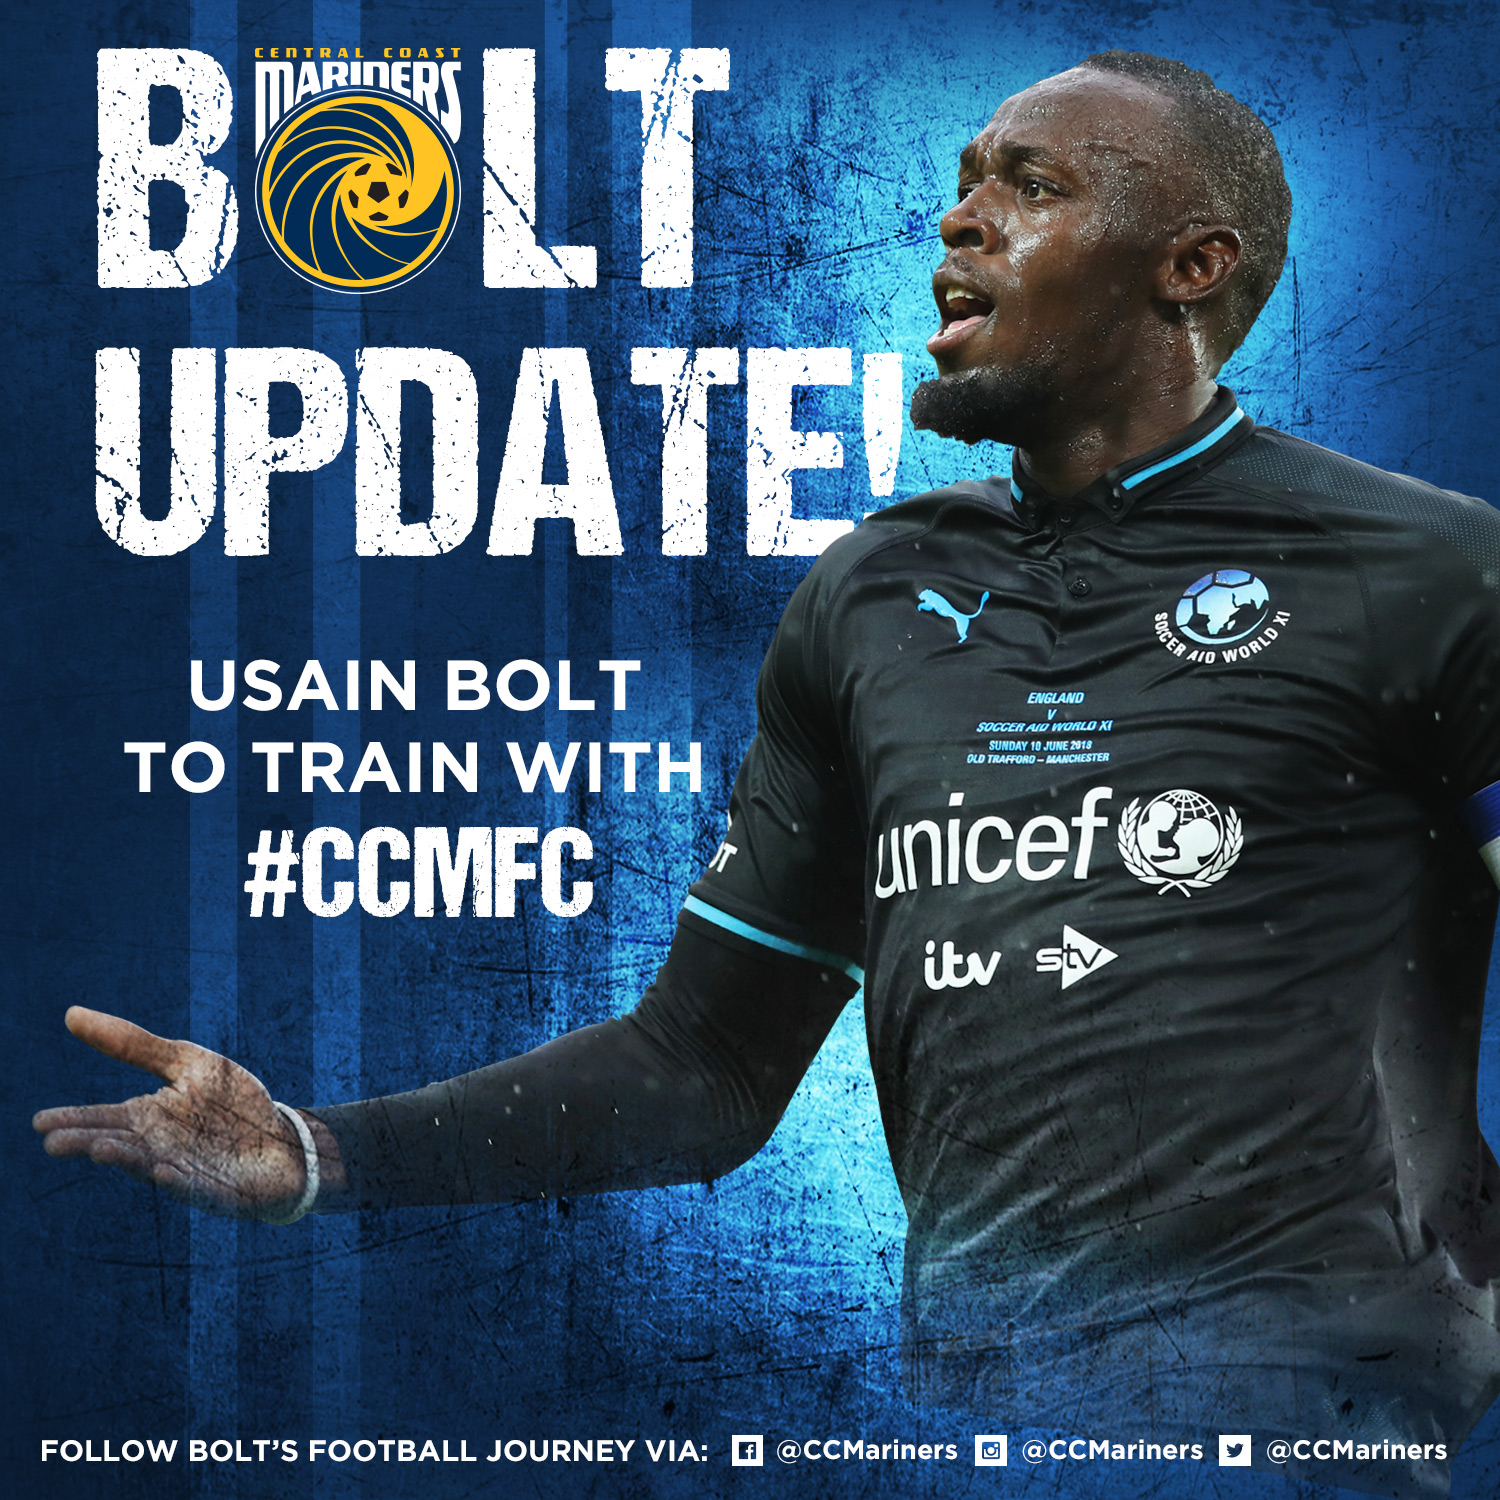 Usain joins the Central Coast Mariners